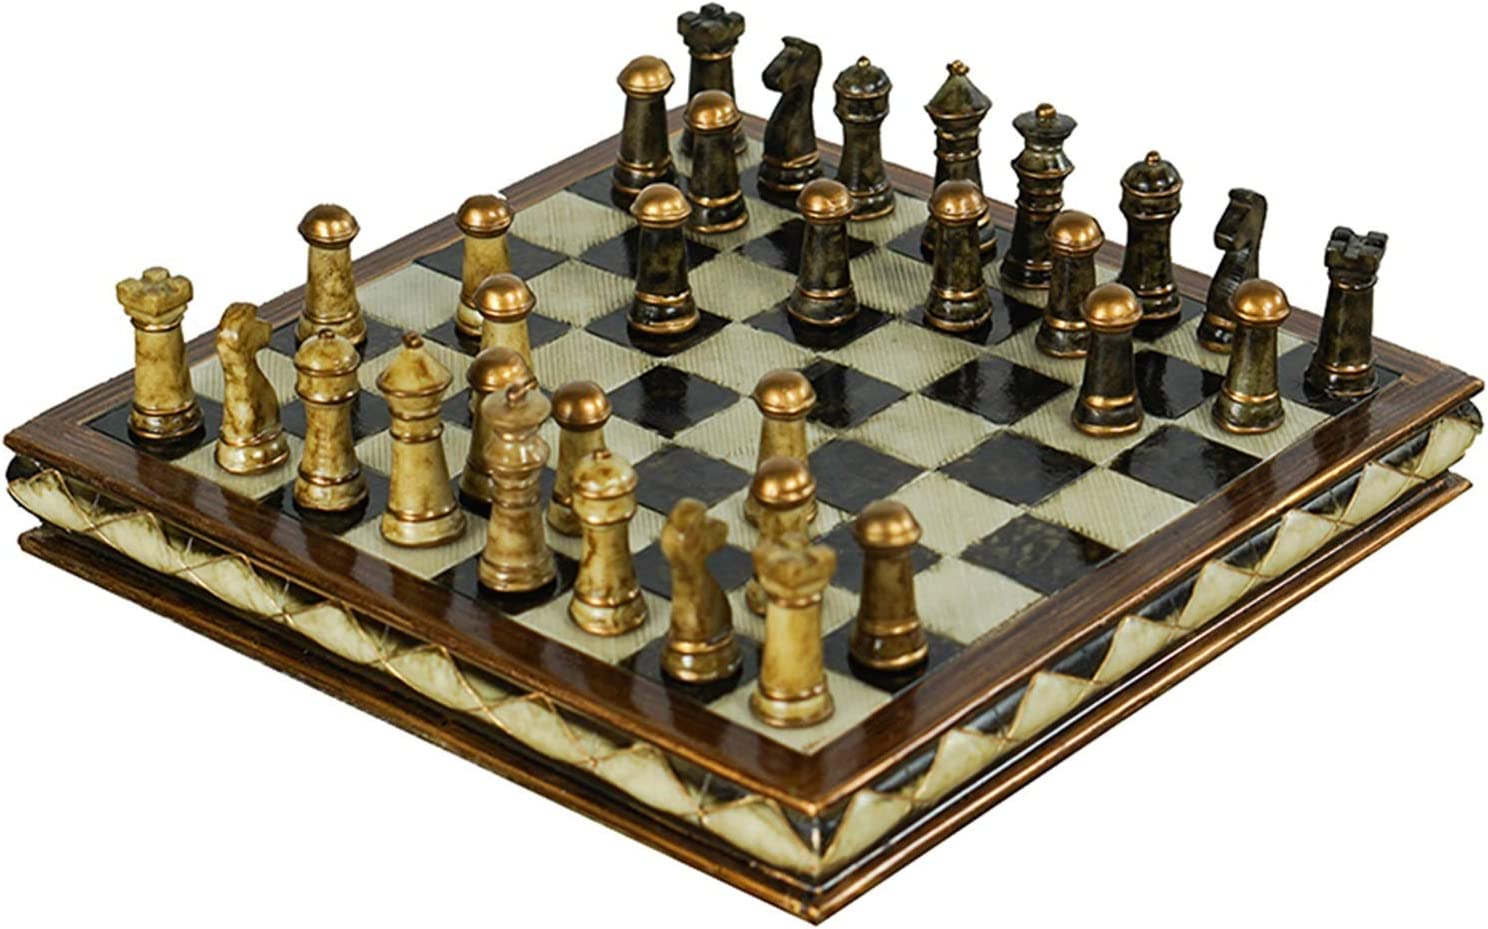 XCYY CHESS SET NEW FOLDING CHESS SET REFINED HIGH-GRADE RESIN WOODEN CHESS SET HANDWORK PIECES CLASSIC DECORATION HOUSEHOLD CHESS SET